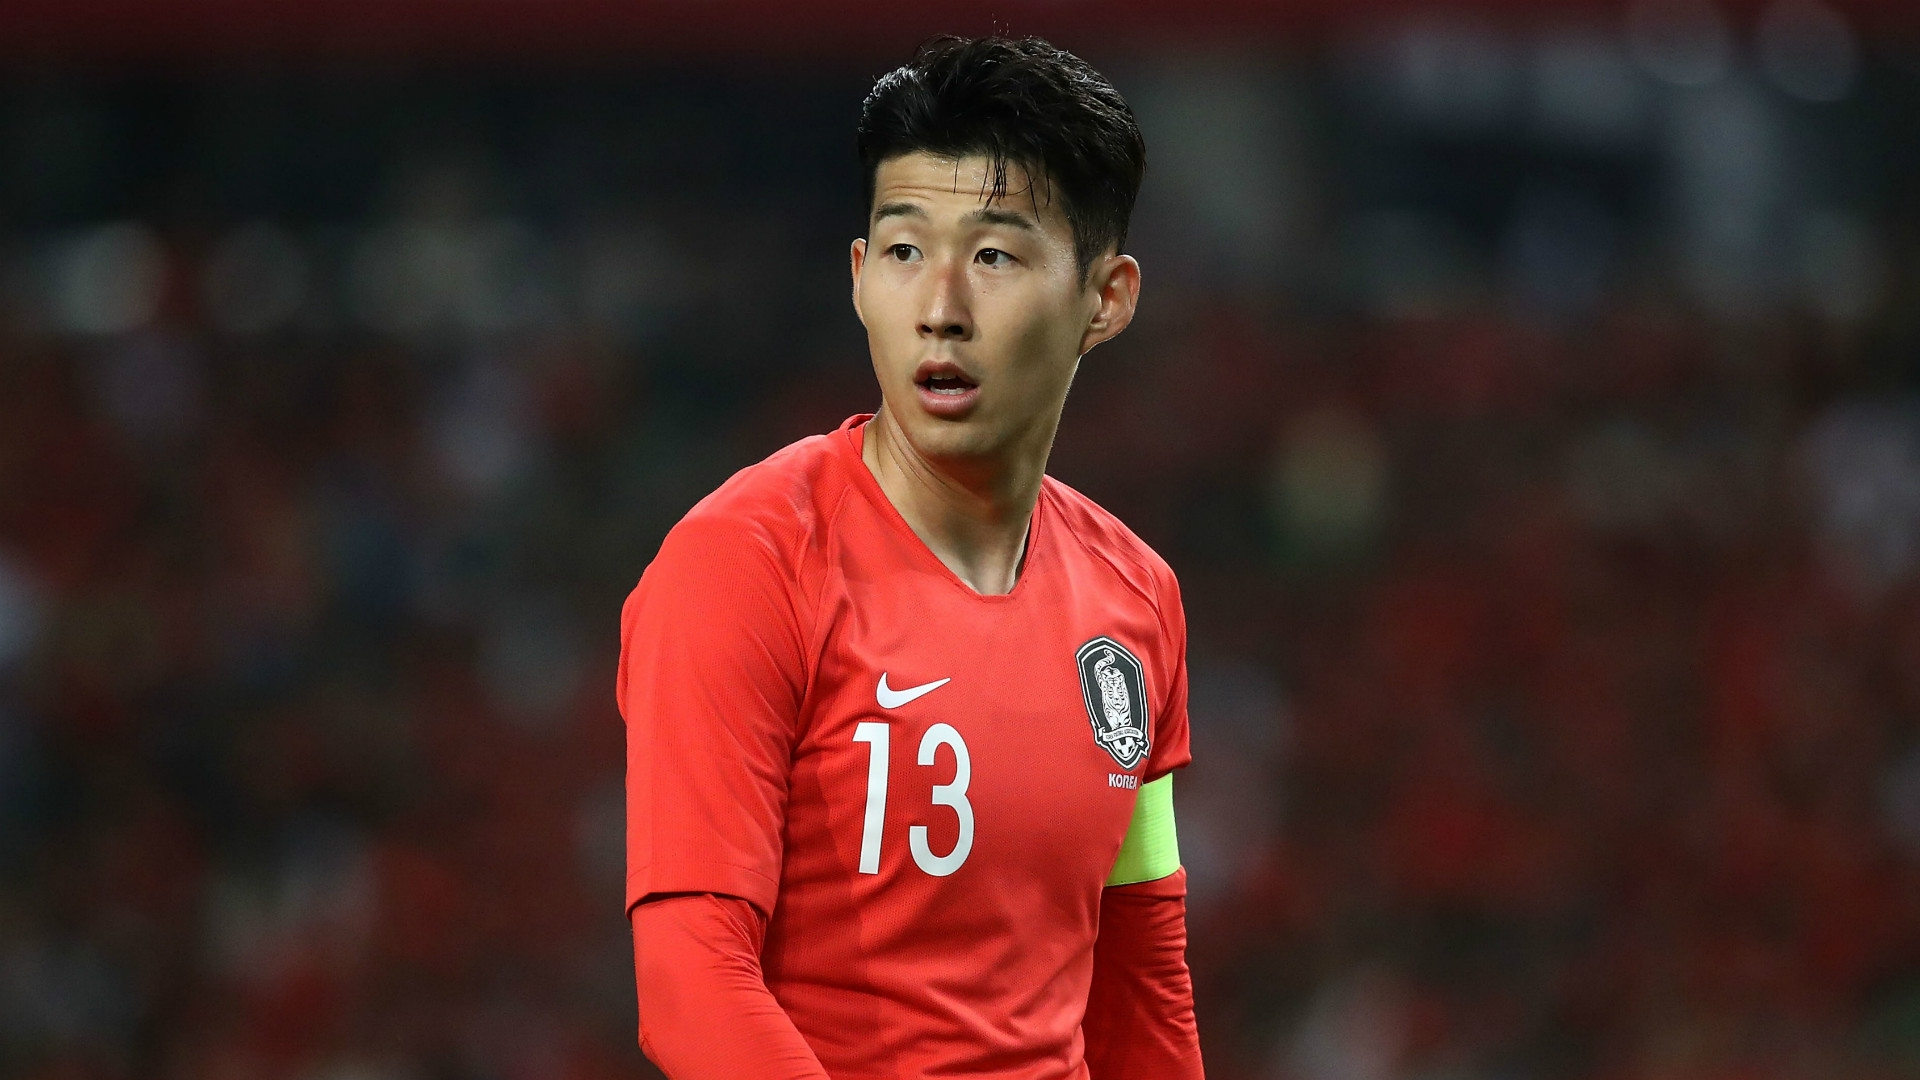 Son Heung- Min - South Korea